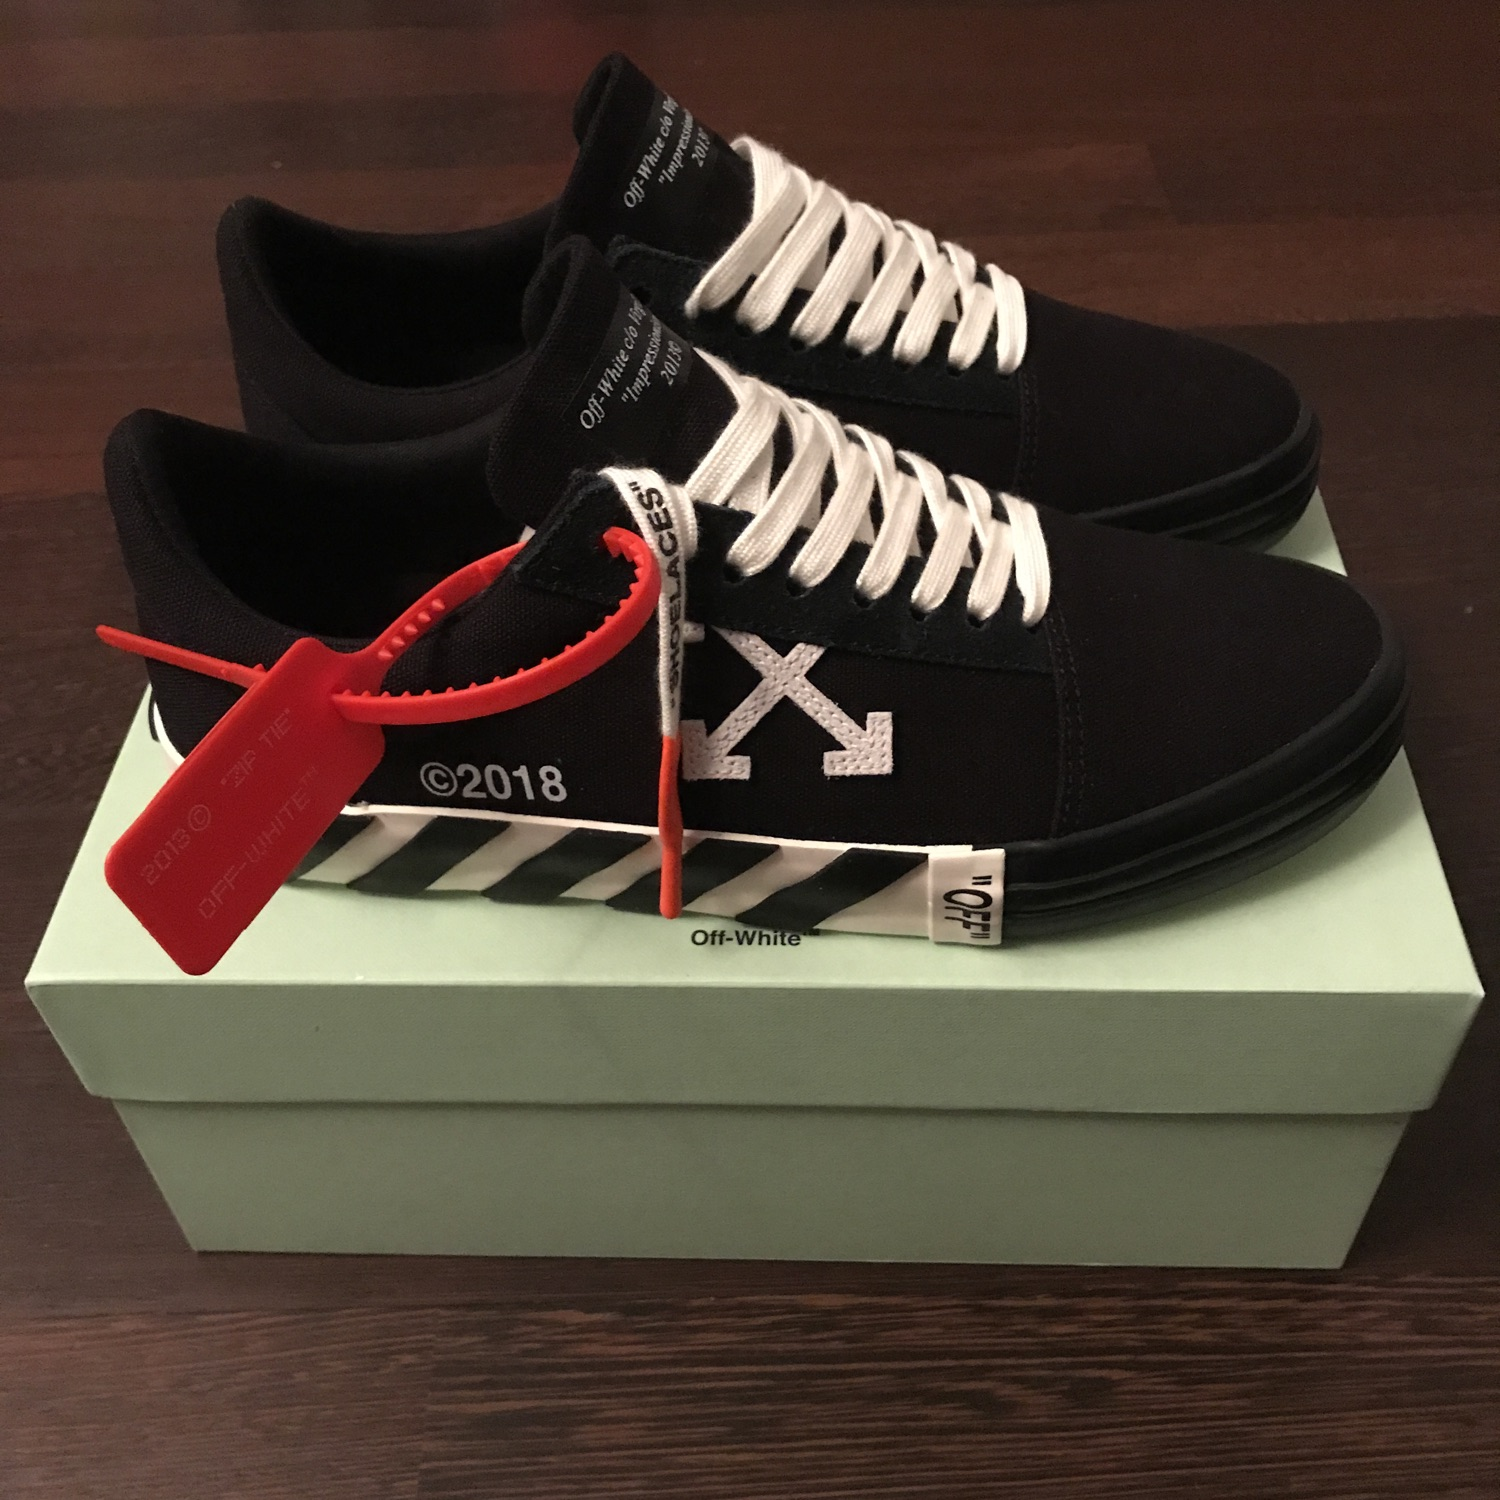 Off-White Vulcanized Low Black Sneakers